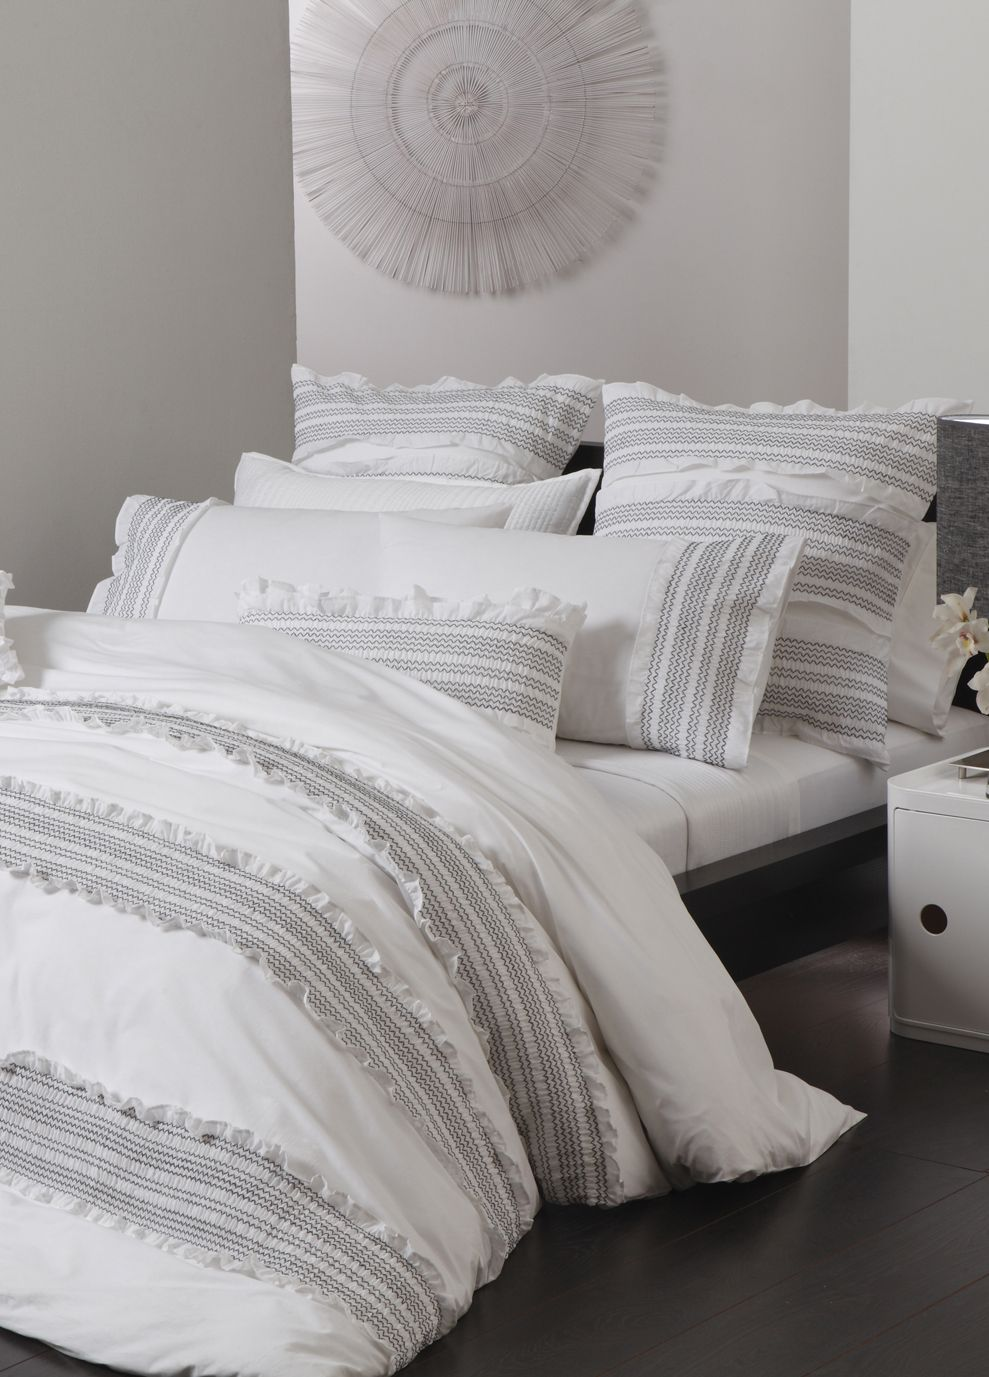 Doona Protector Platinum Bedding Mia White Quilt Cover Set Super King Sweet